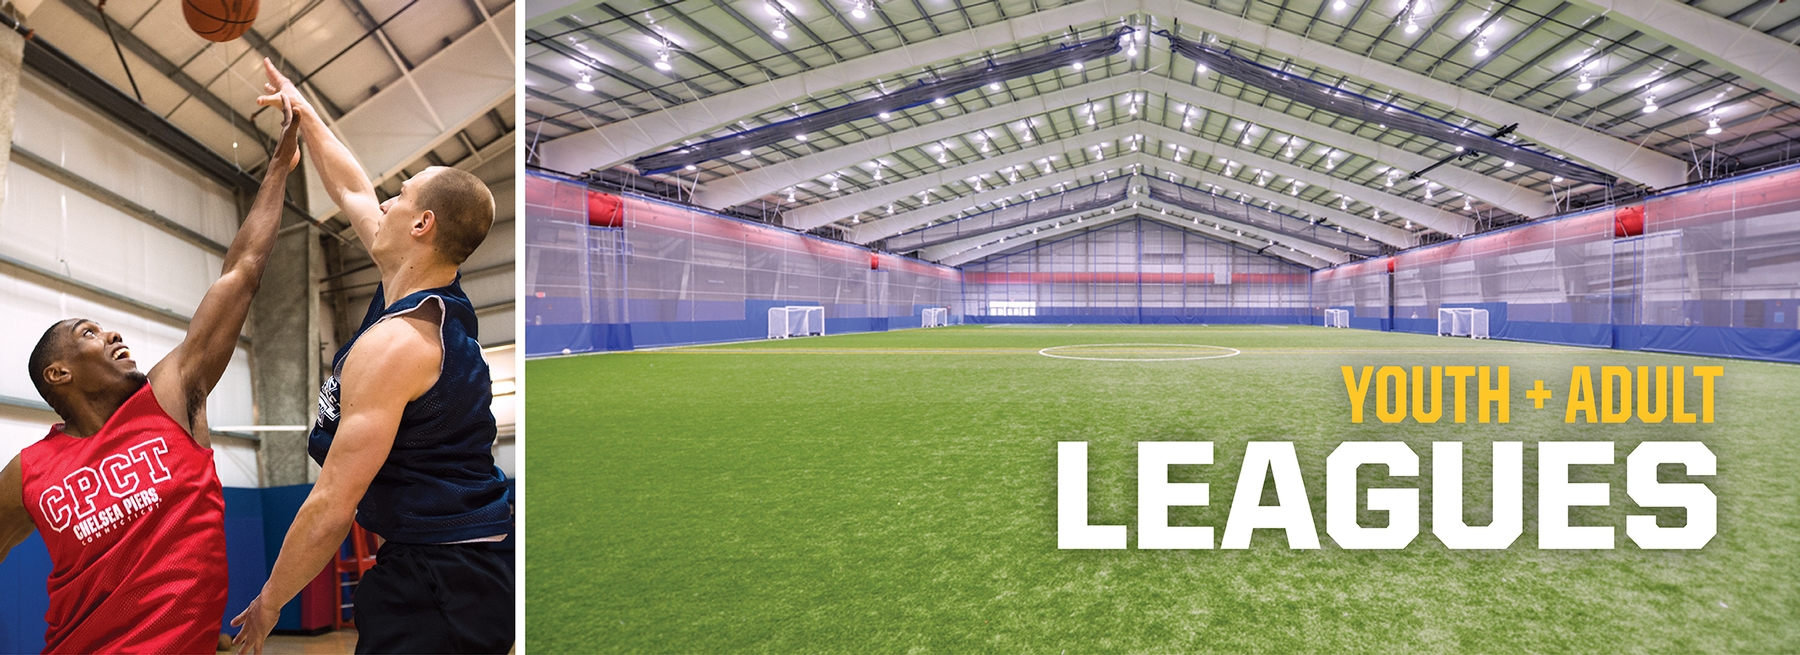 Youth and Adult Leagues